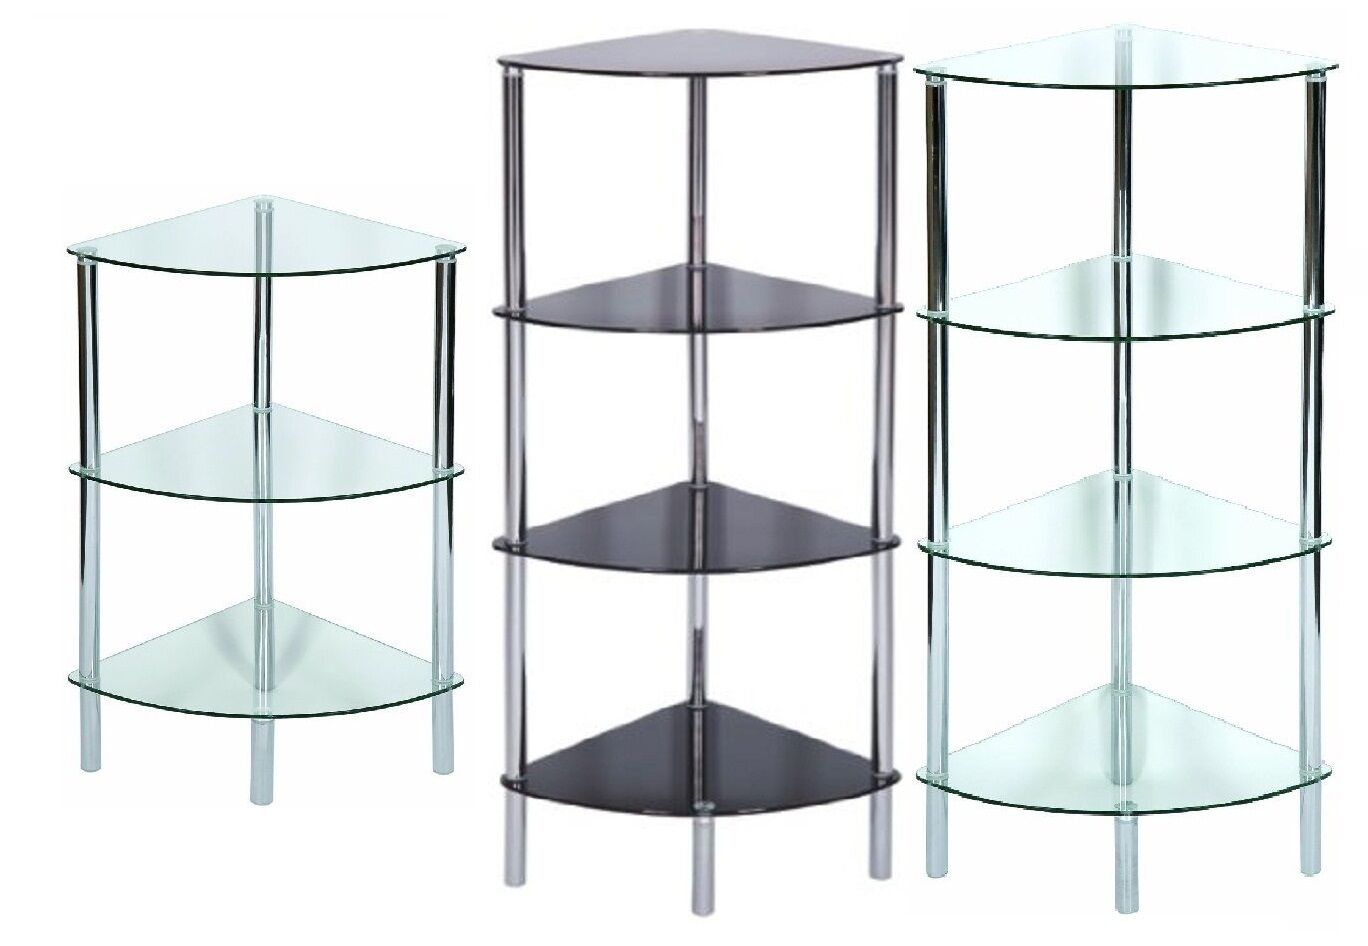 Shelving Unit Corner Display Side End Table Glass Shelf. Table Top Clock. Glass Desk With Storage. Play Table For Toddler. Z Line Belaire Glass L Shaped Computer Desk. Lift Top Coffee Table. High Kitchen Table Sets. Lap Desk For Tablet. Tall Accent Table